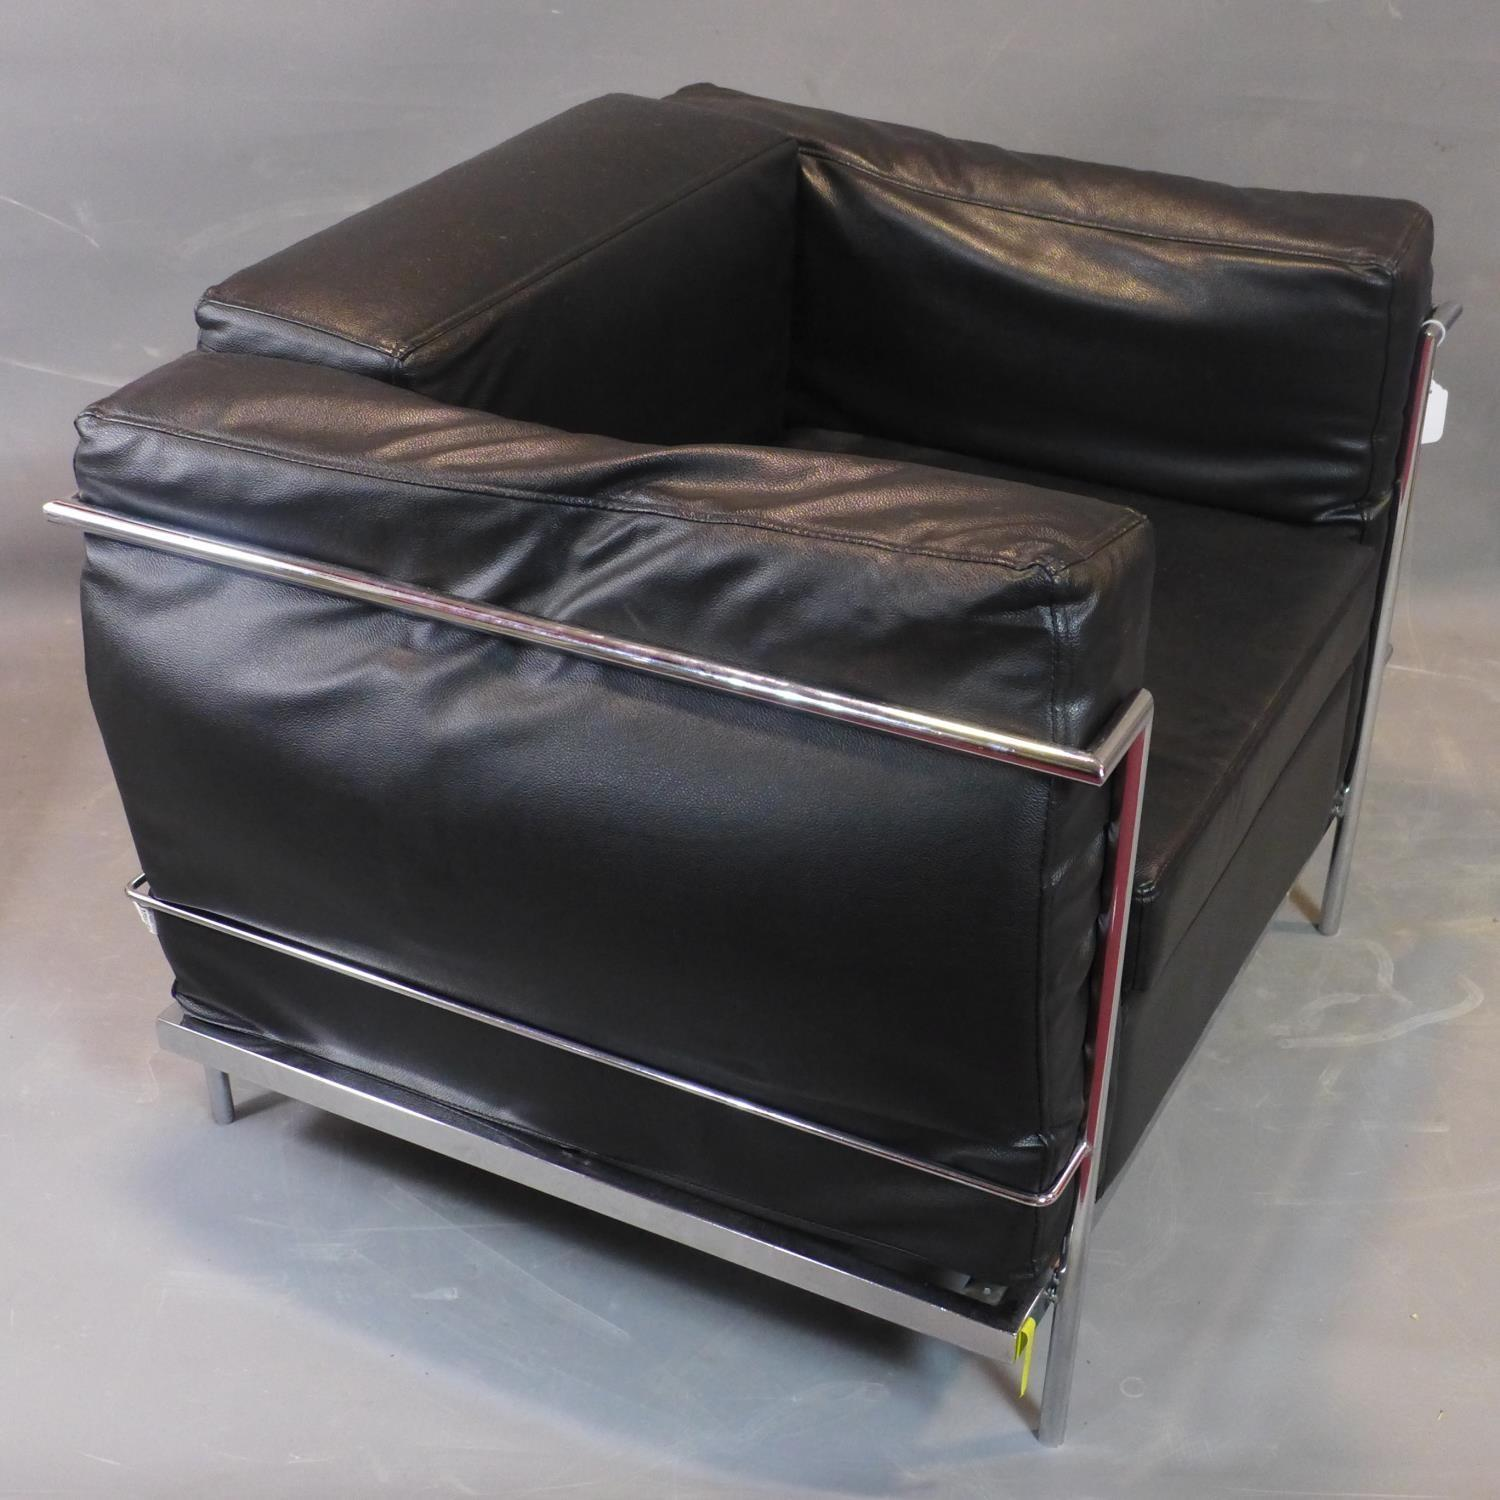 Lot 255 - A Le Corbusier style chrome and black leather sofa, with label for Amax, H.72 W.90 D.76cm